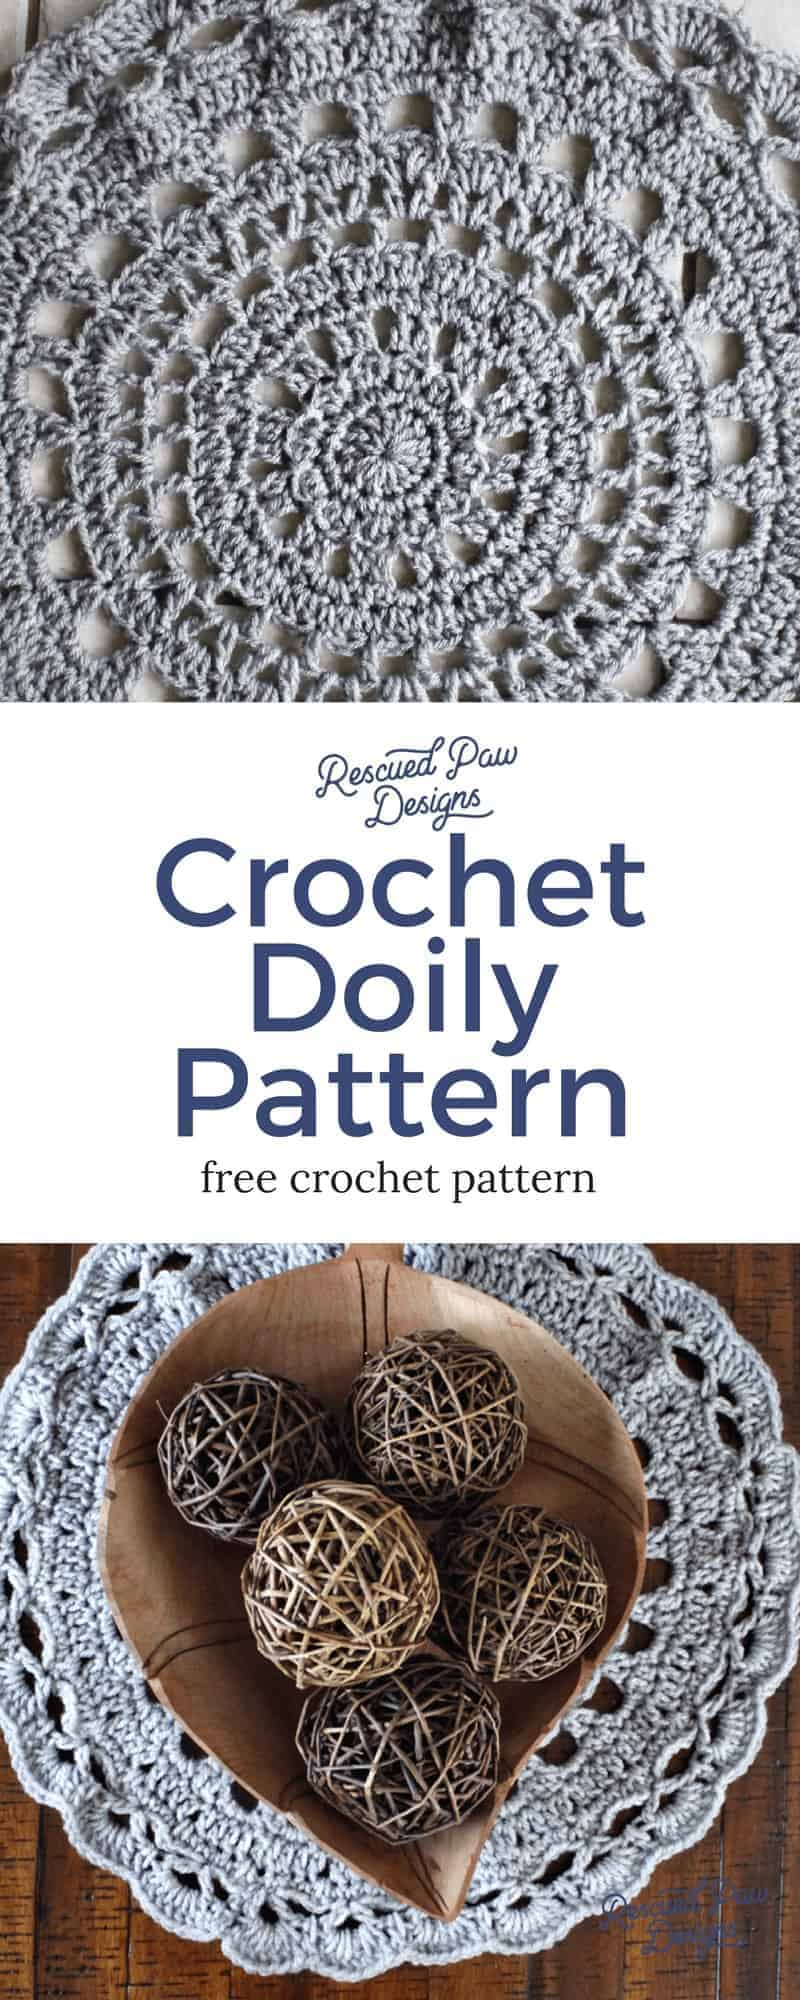 Crochet doily pattern rescued paw designs crochet free crochet doily pattern by rescued paw designs can even be used as a small bankloansurffo Images